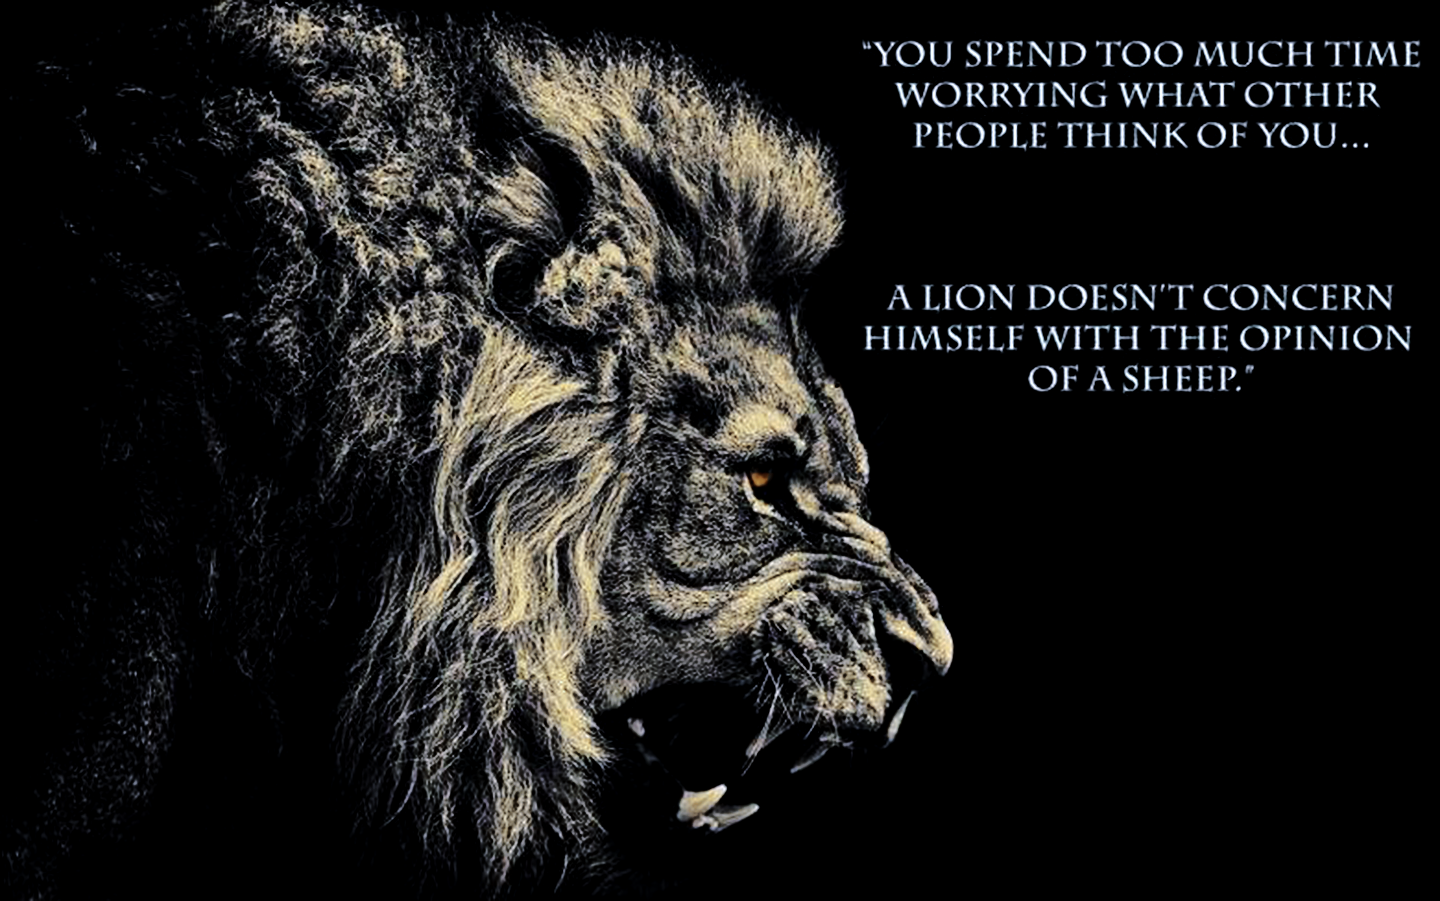 Lion Quotes And Sayings Google Search Best Deal Online - Lions Wallpaper With Quotes , HD Wallpaper & Backgrounds